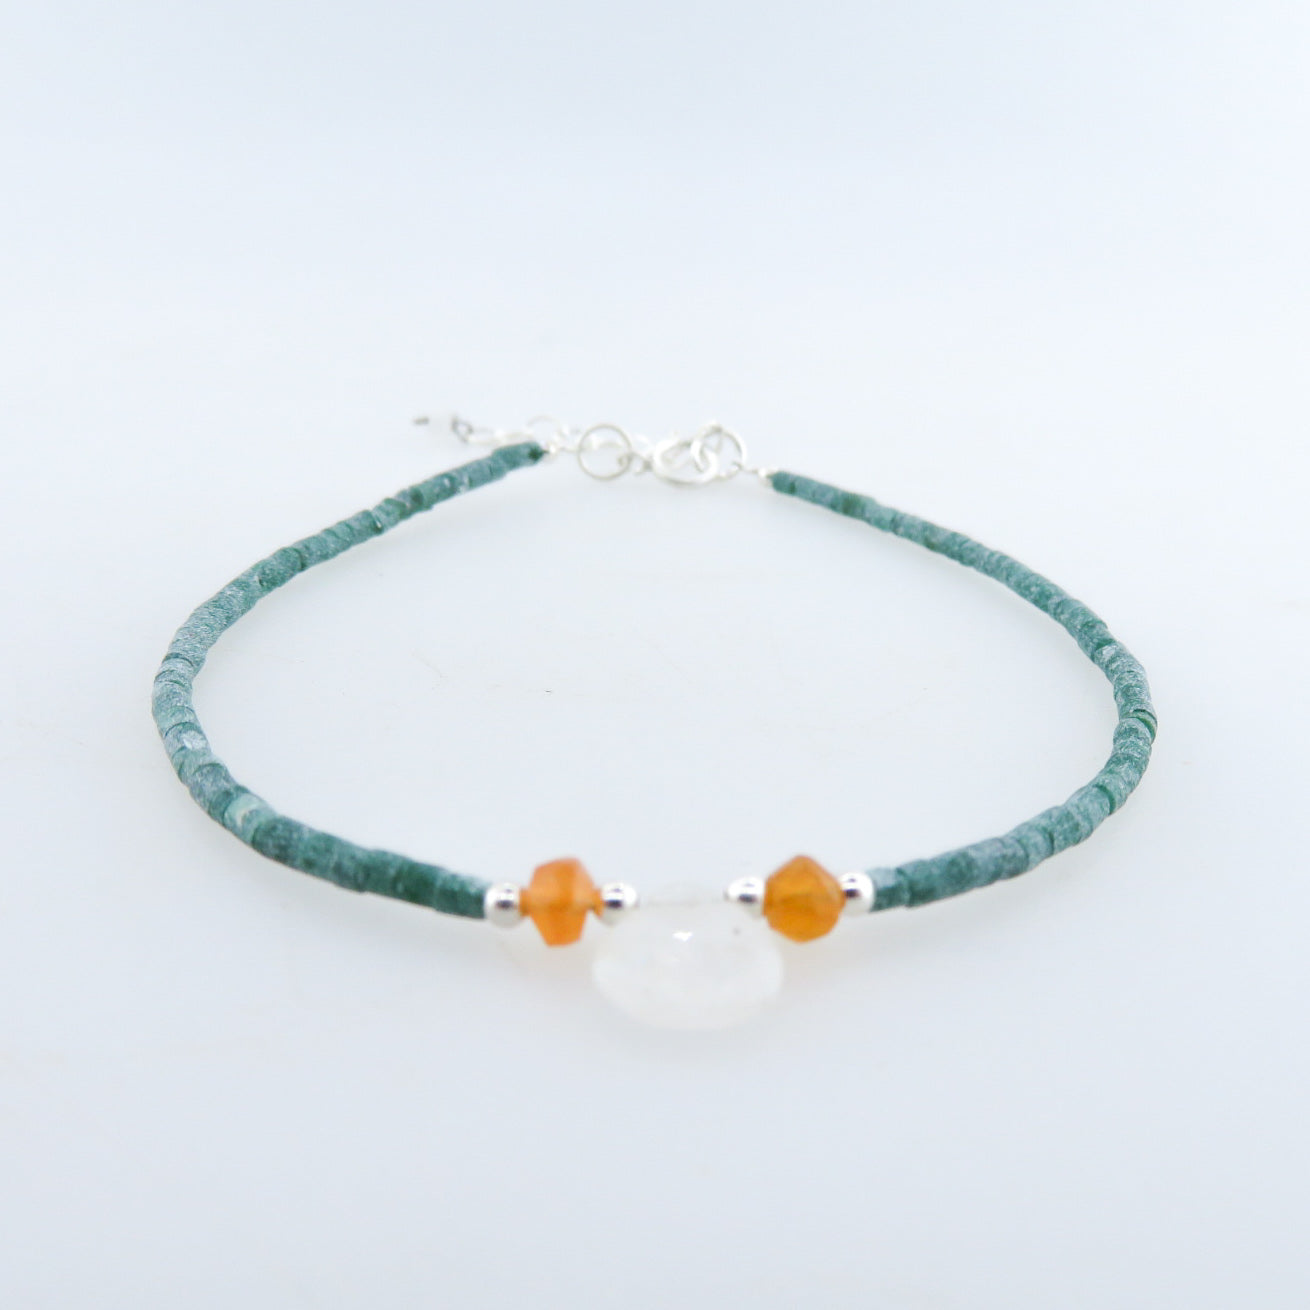 Emerald Bracelet with Rainbow Moon Stone, Carnelian and Silver Beads